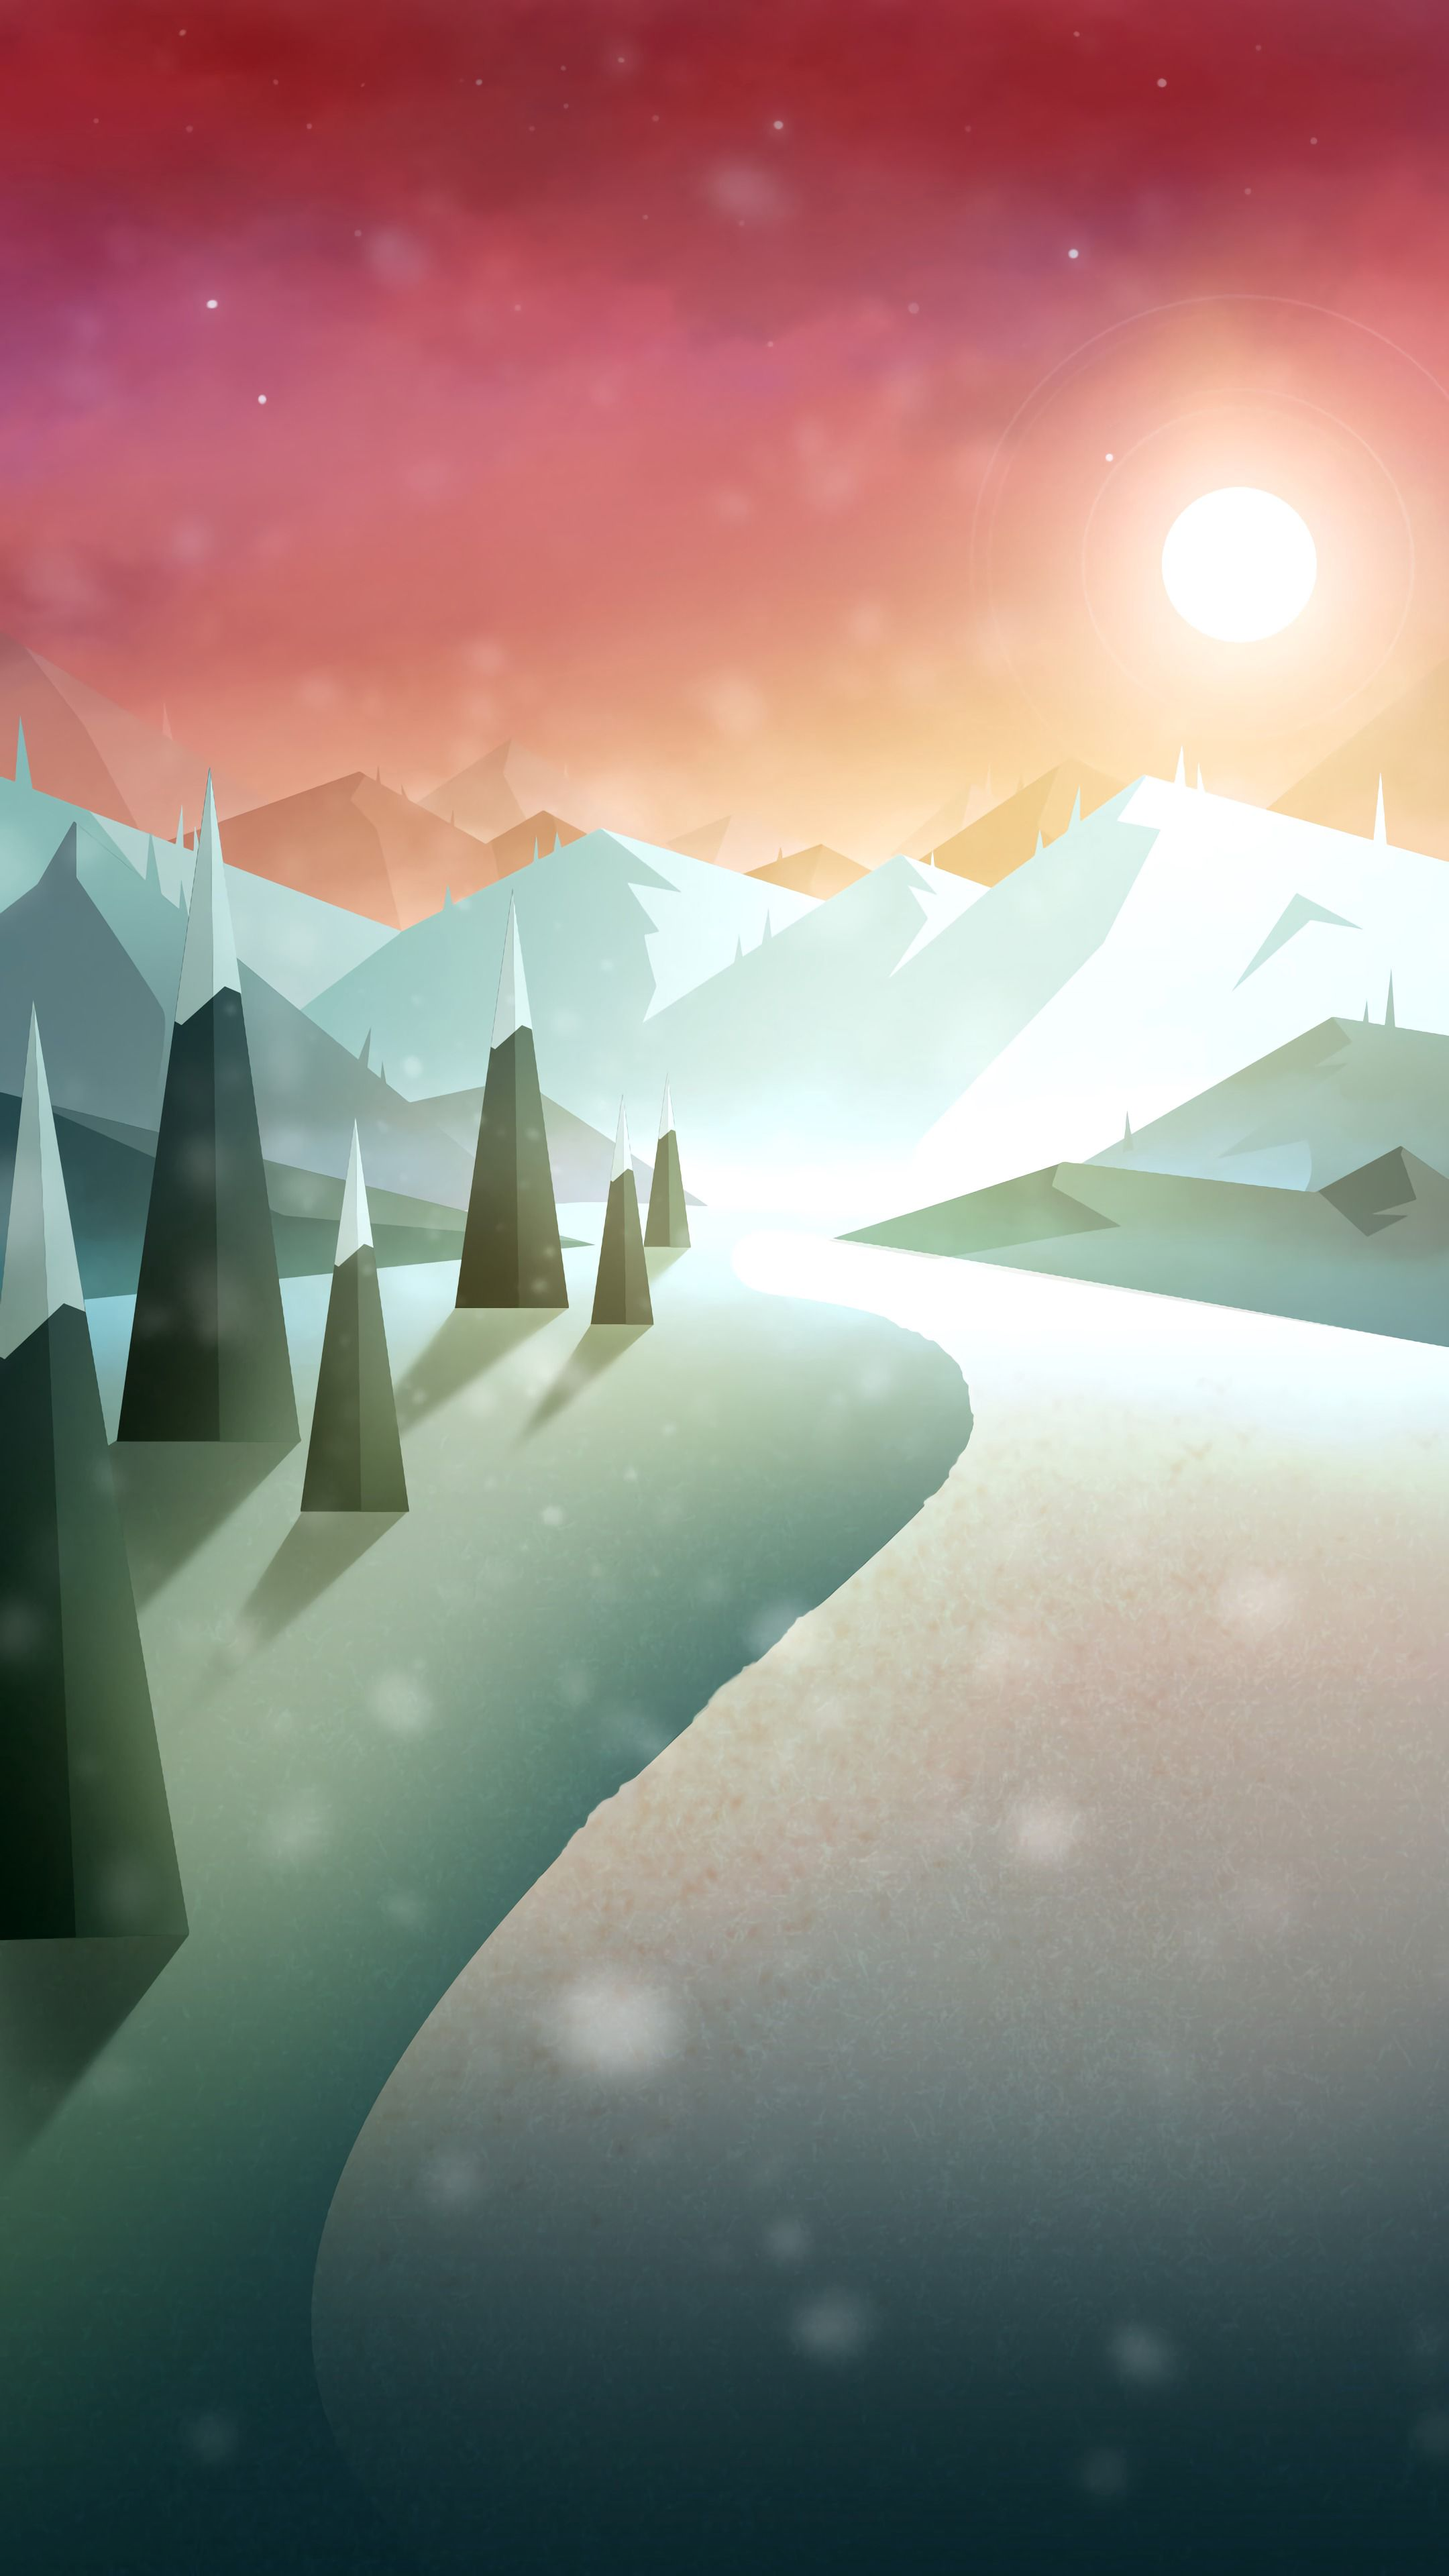 107353 download wallpaper Road, Snow, Art, Mountains, Sun screensavers and pictures for free